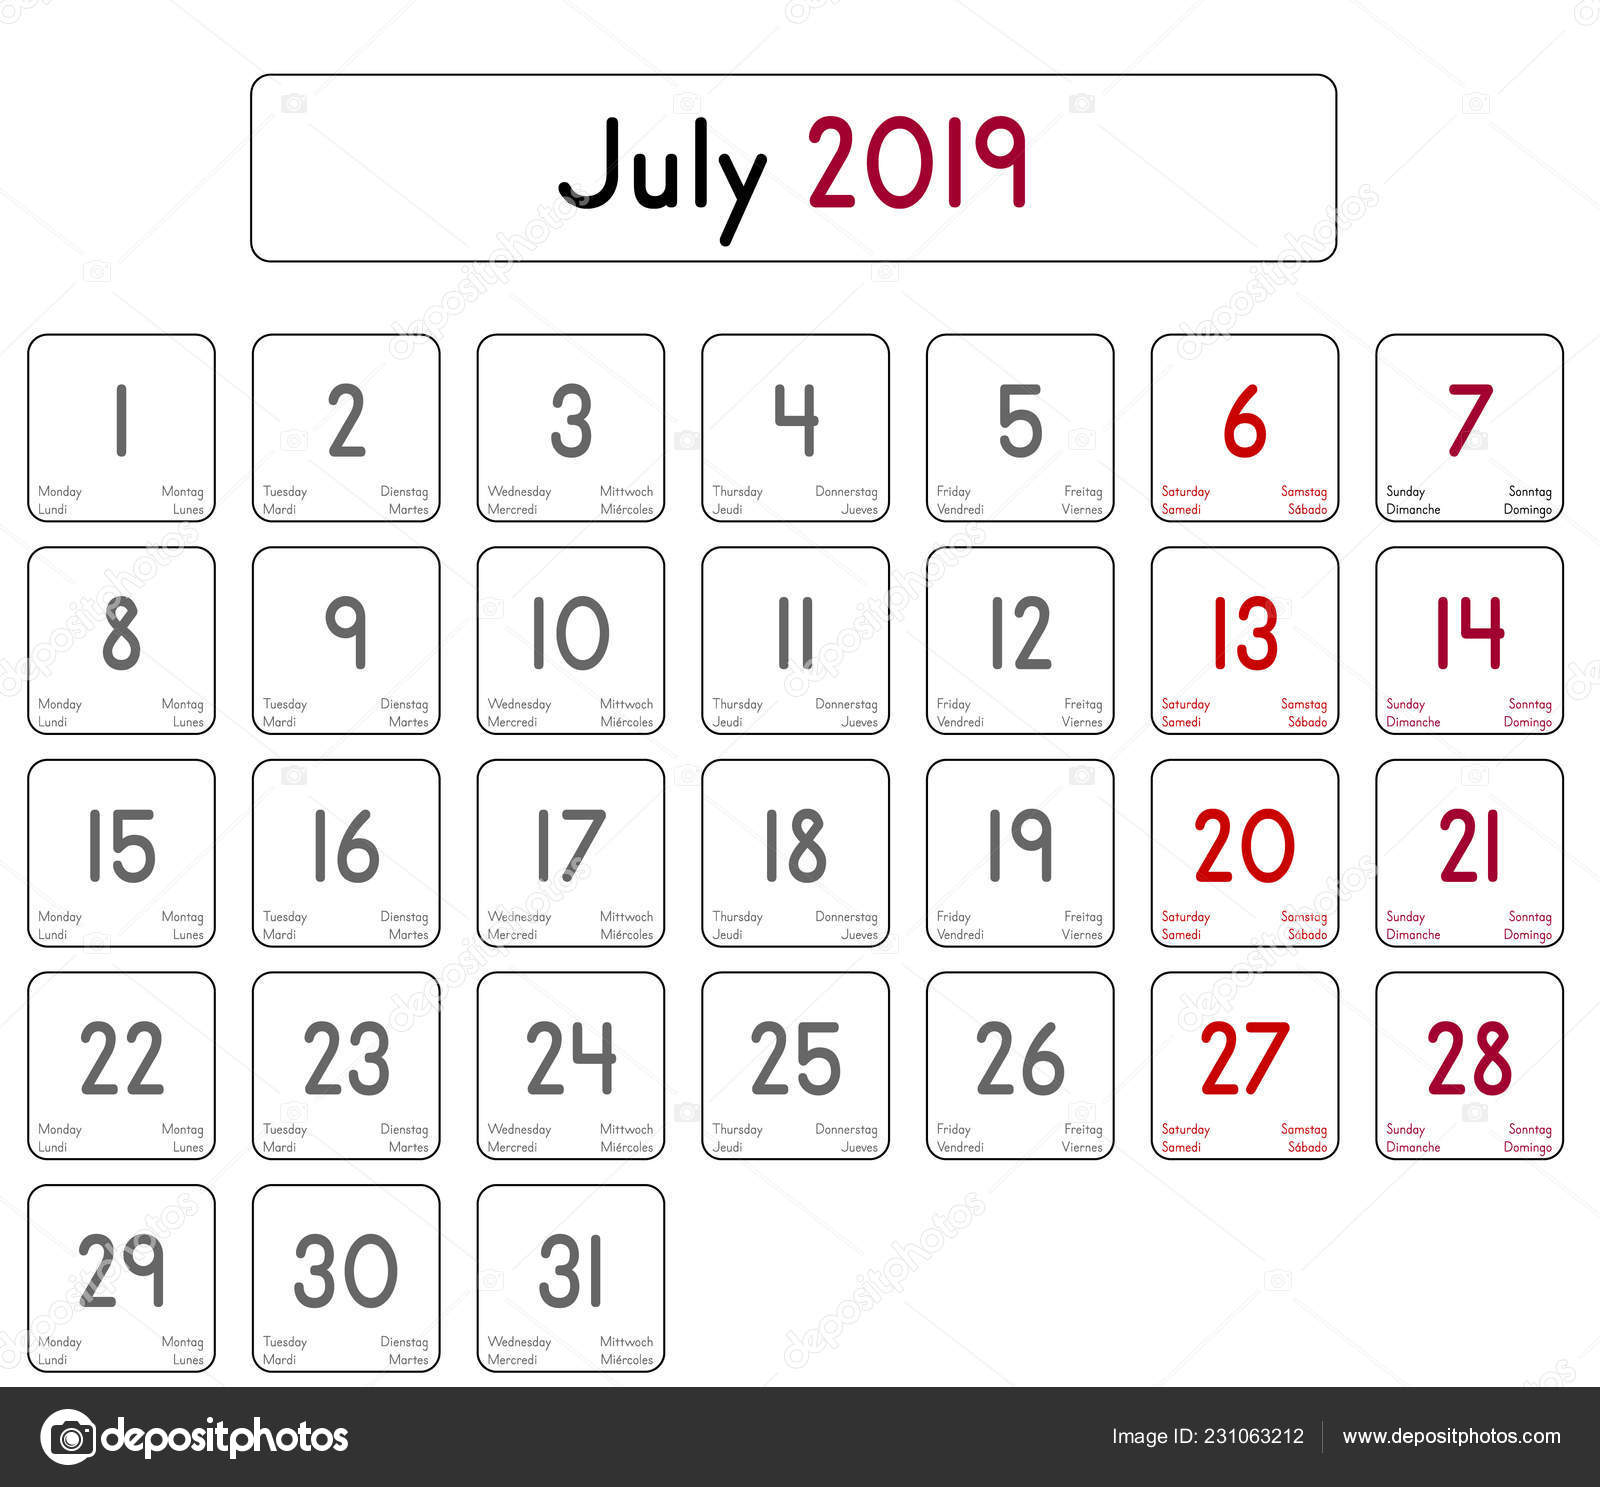 Calendario Julio 2019 Vector.Detailed Daily Calendar Month July 2019 Stock Vector